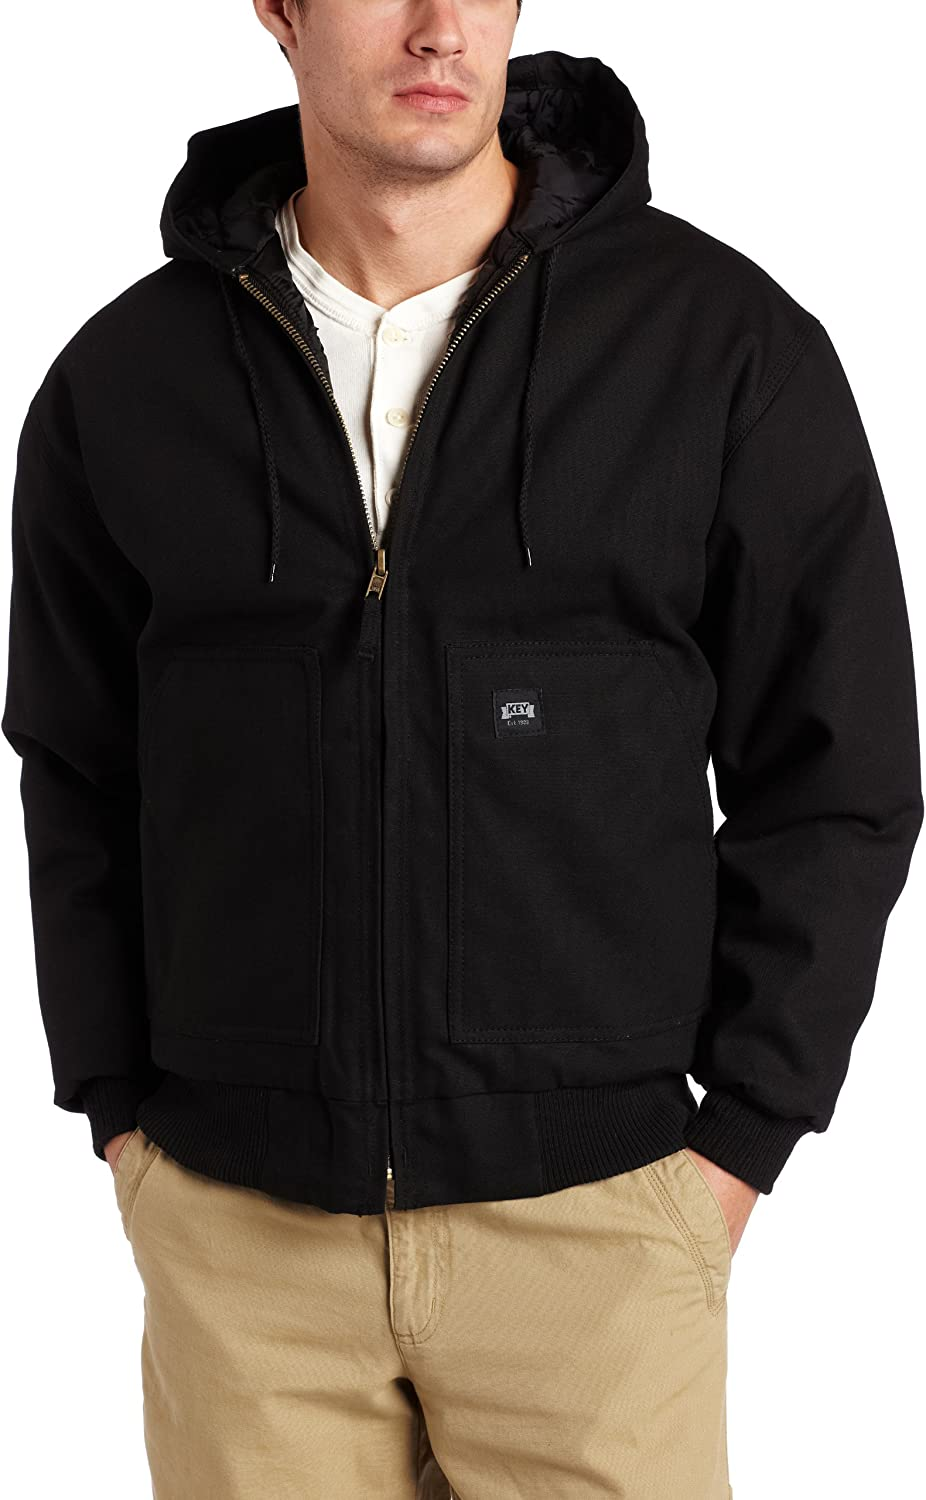 Key Industries Men's Insulated Hooded Duck Jacket